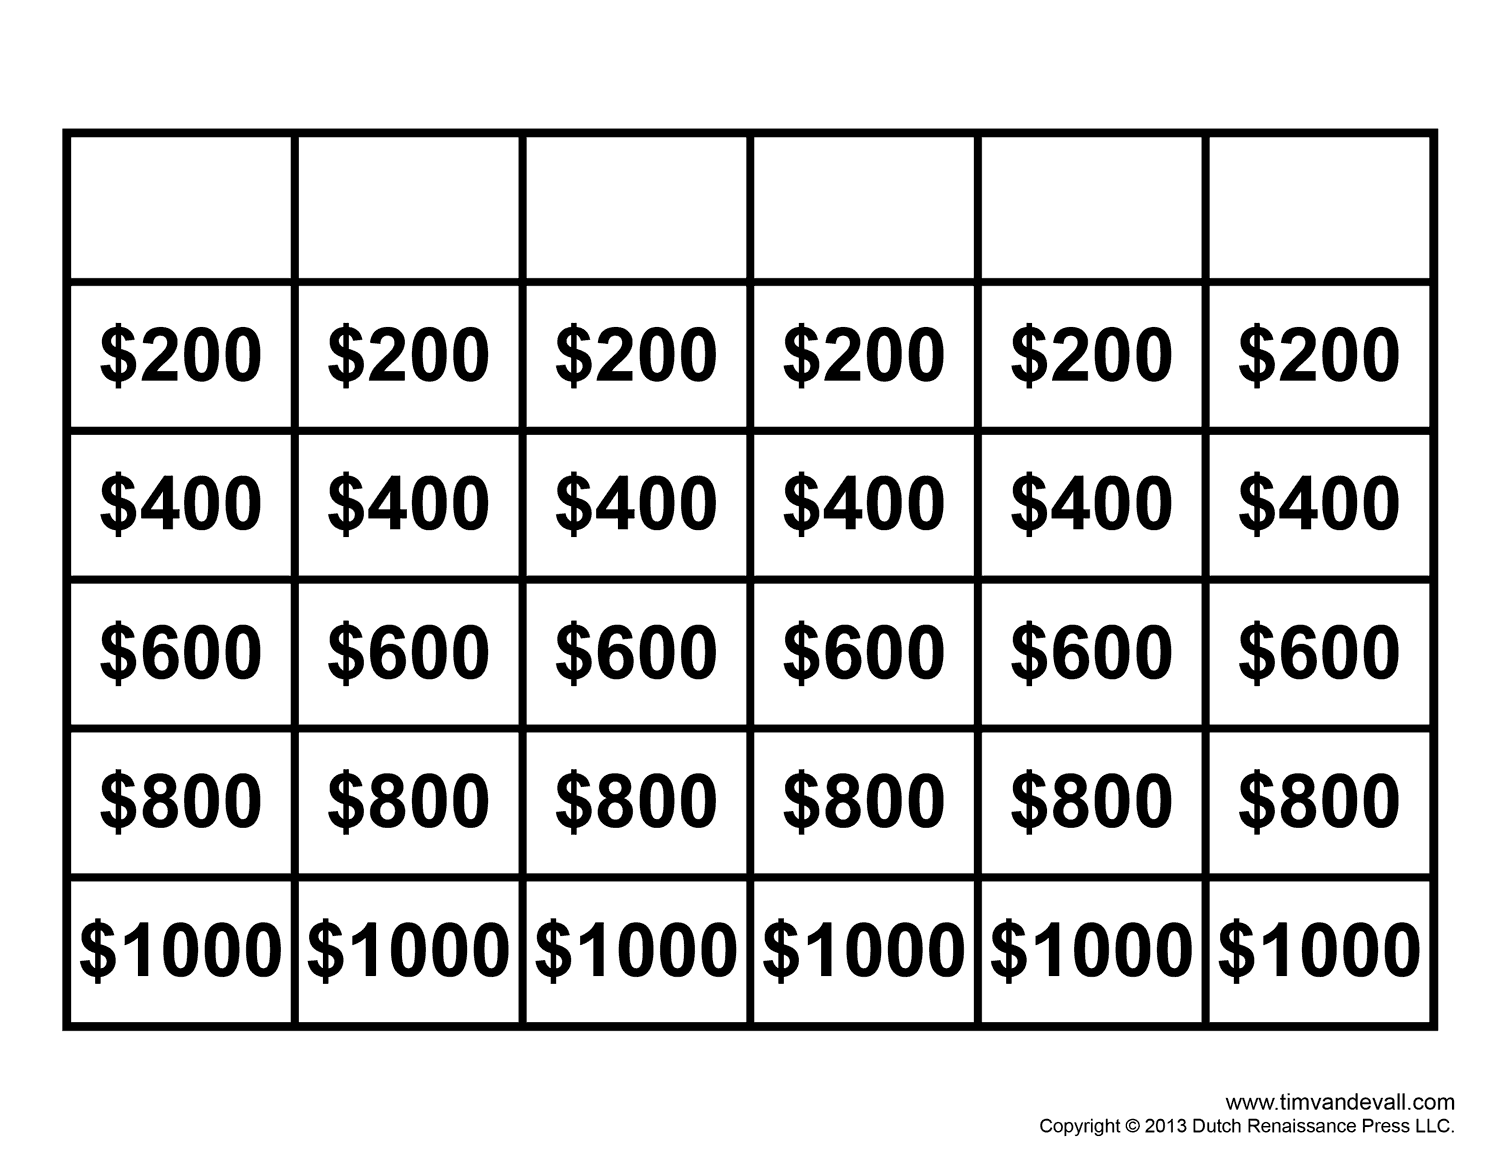 jeporady template. jeopardy template powerpoint game keeps scores, Modern powerpoint